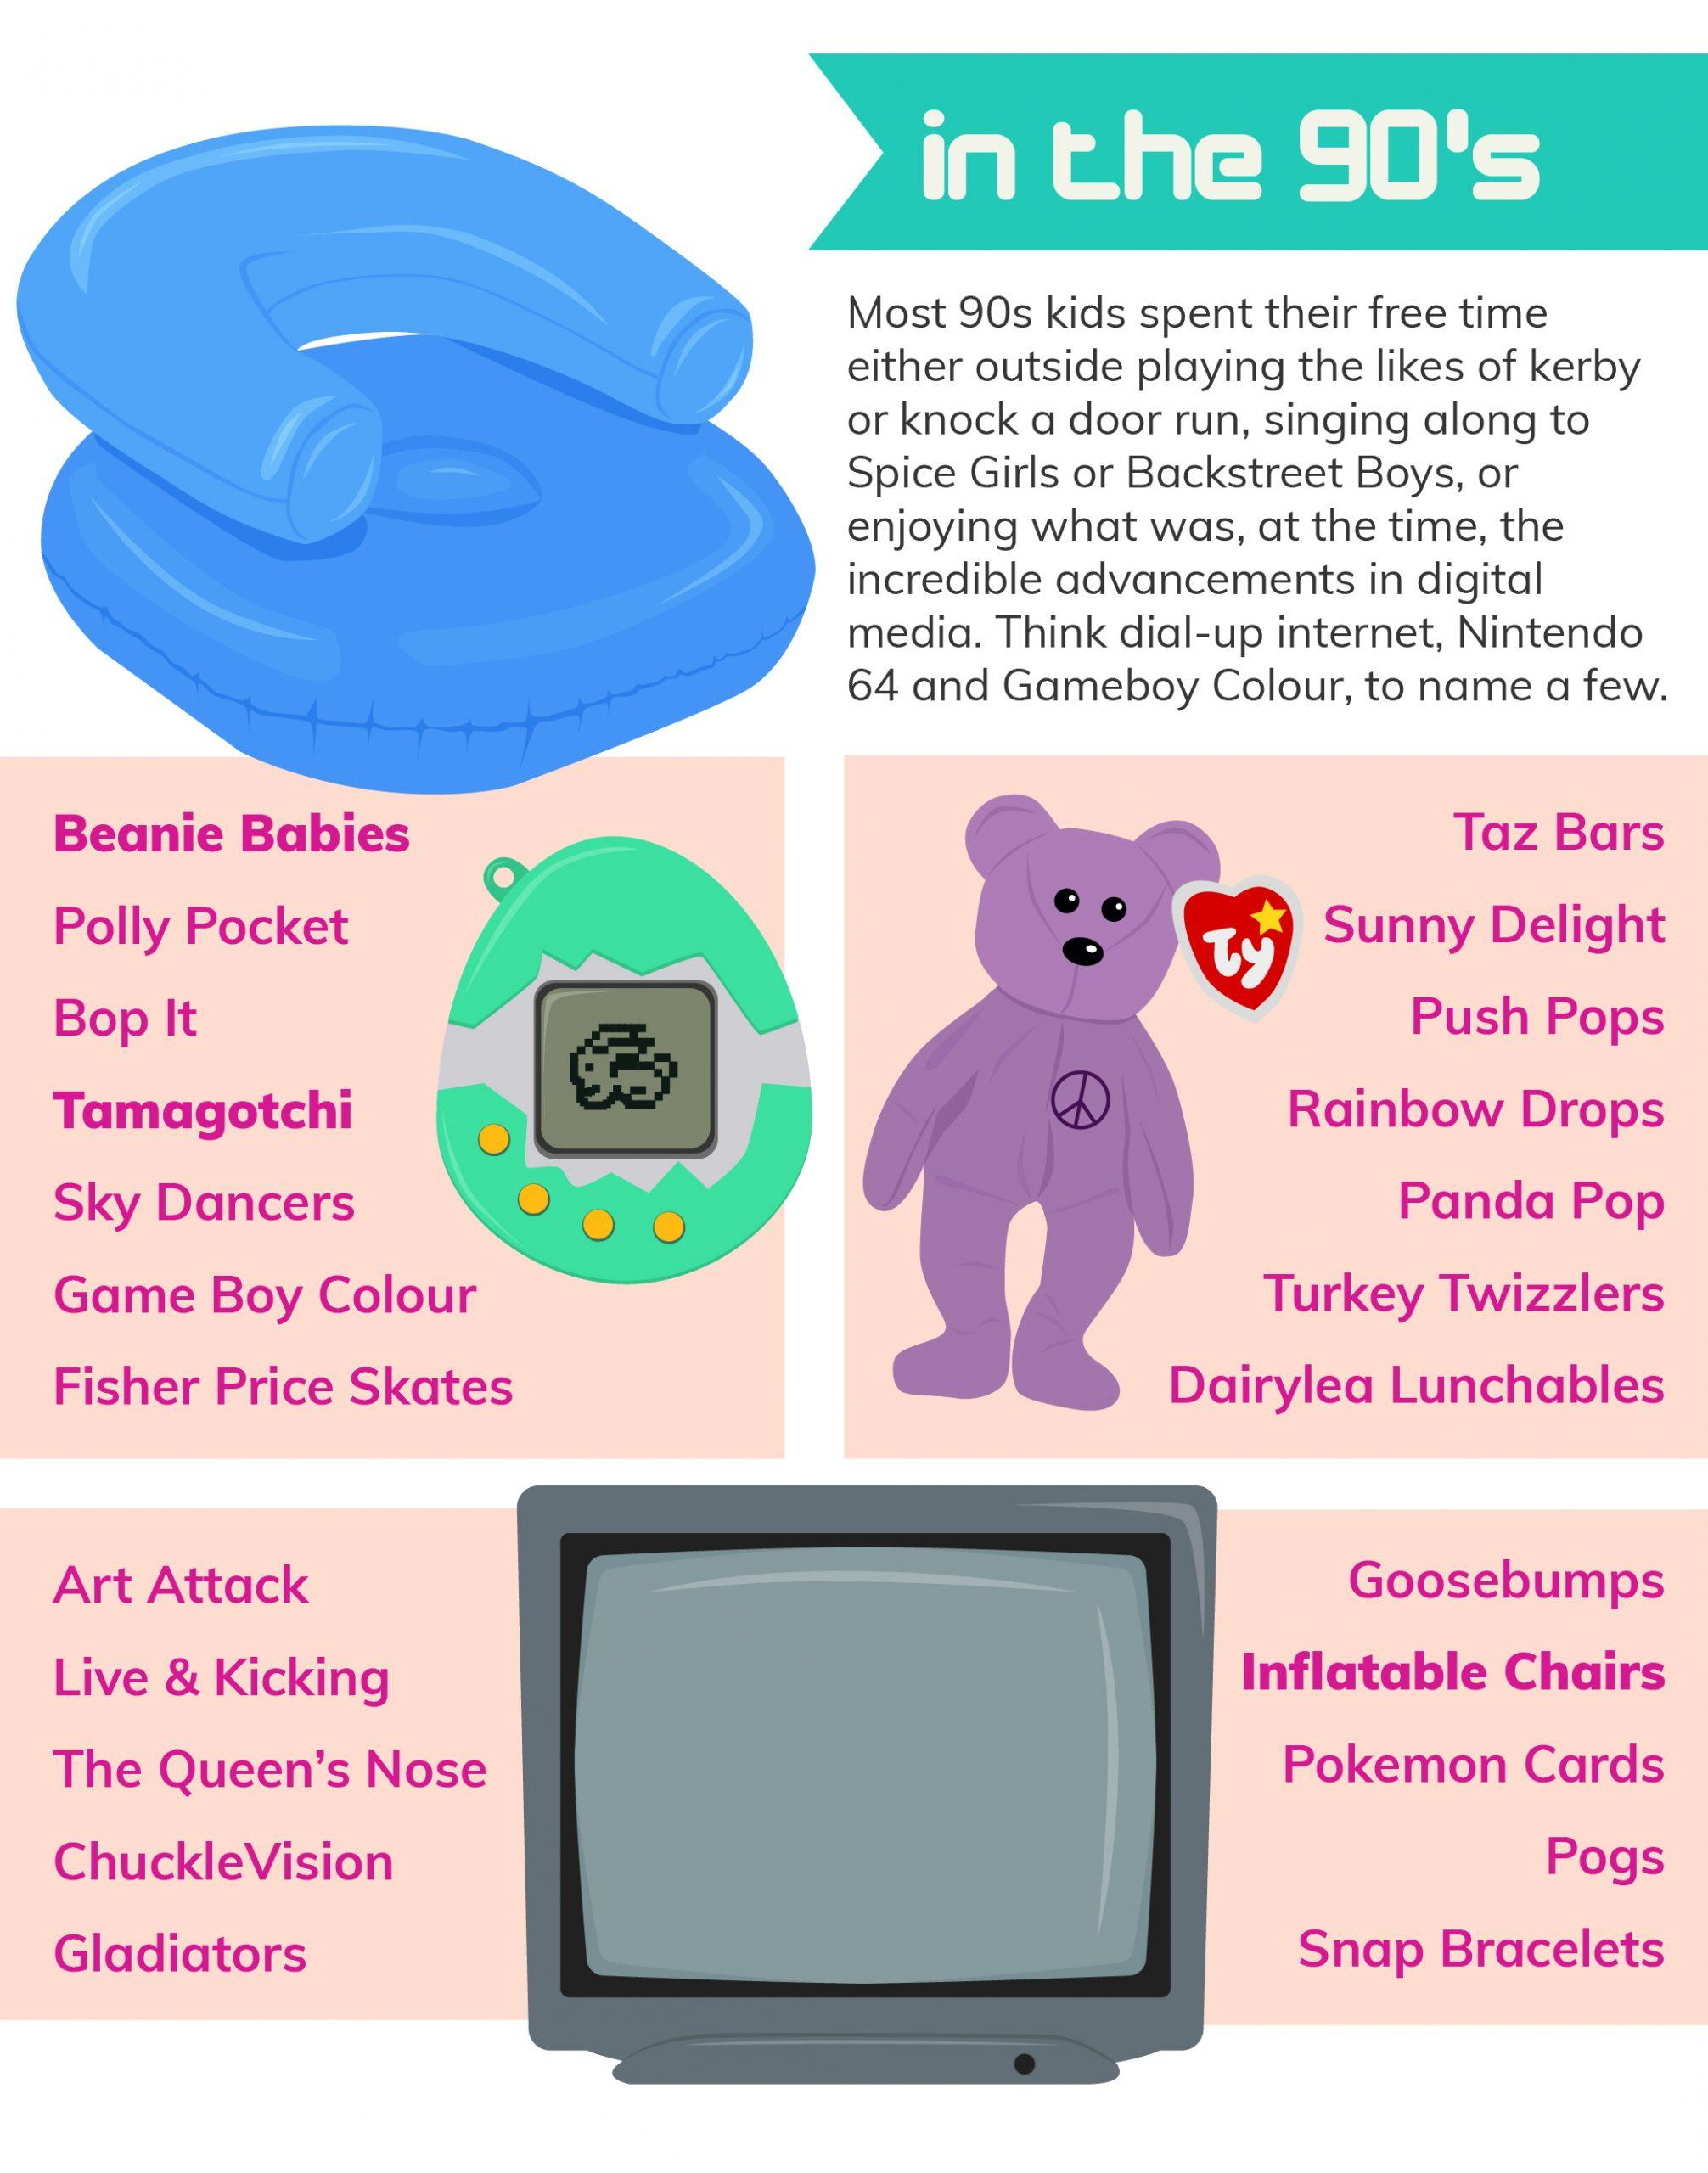 Why Our Own Childhood Toys Are Great for Our Children